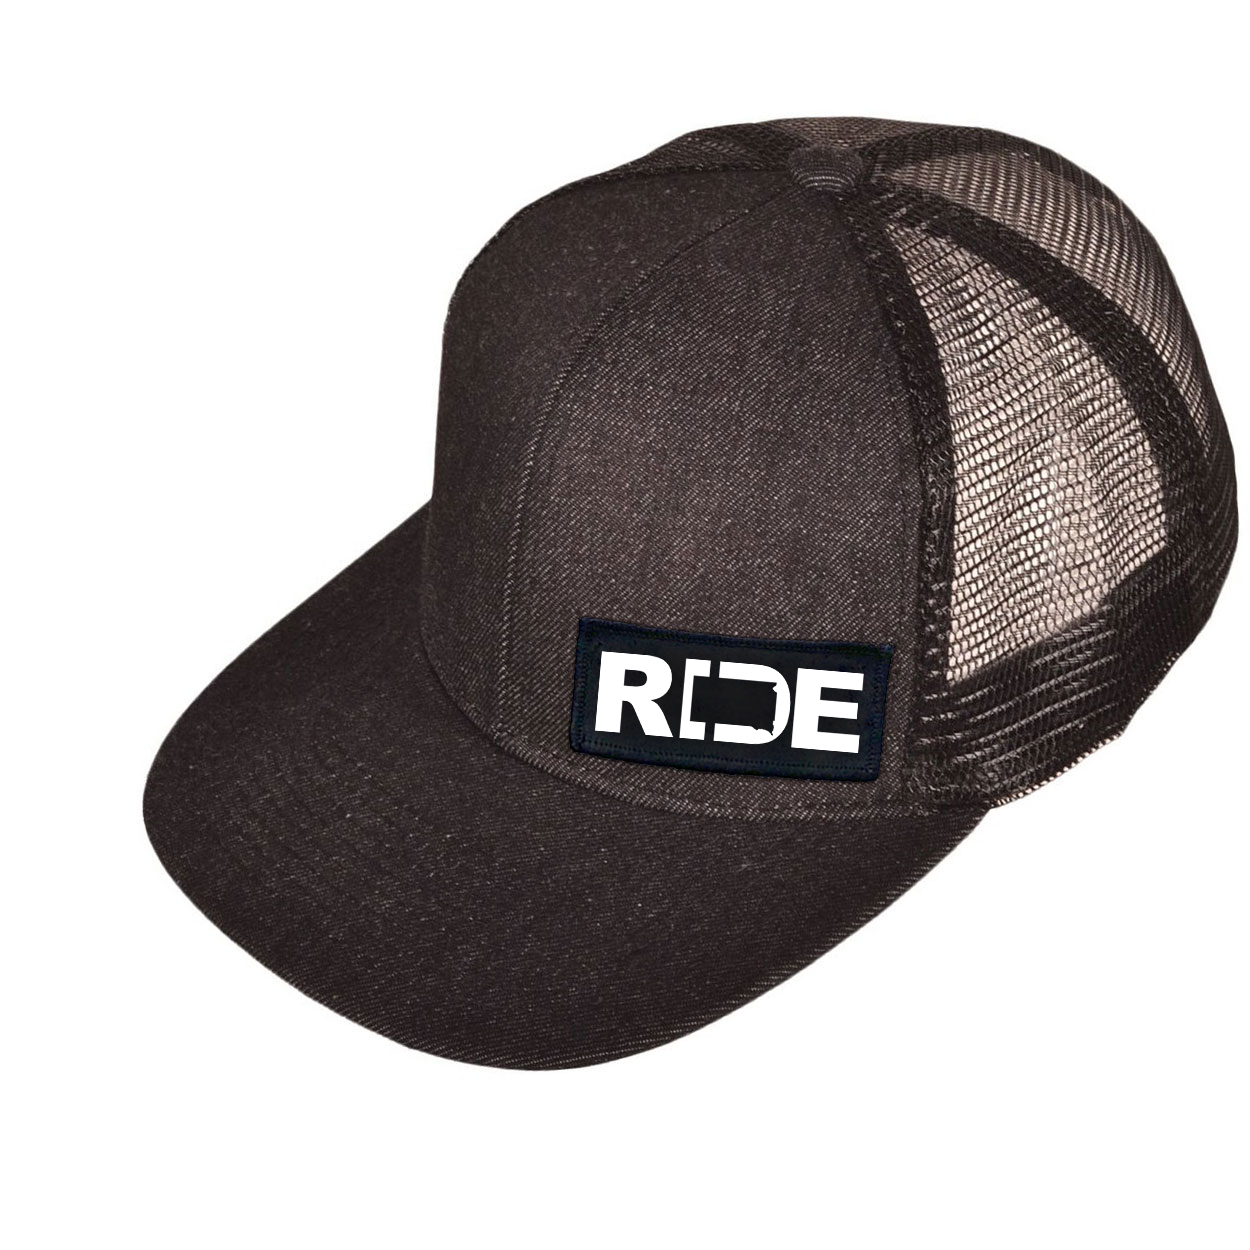 Ride South Dakota Night Out Woven Patch Snapback Flat Brim Hat Black Denim (White Logo)